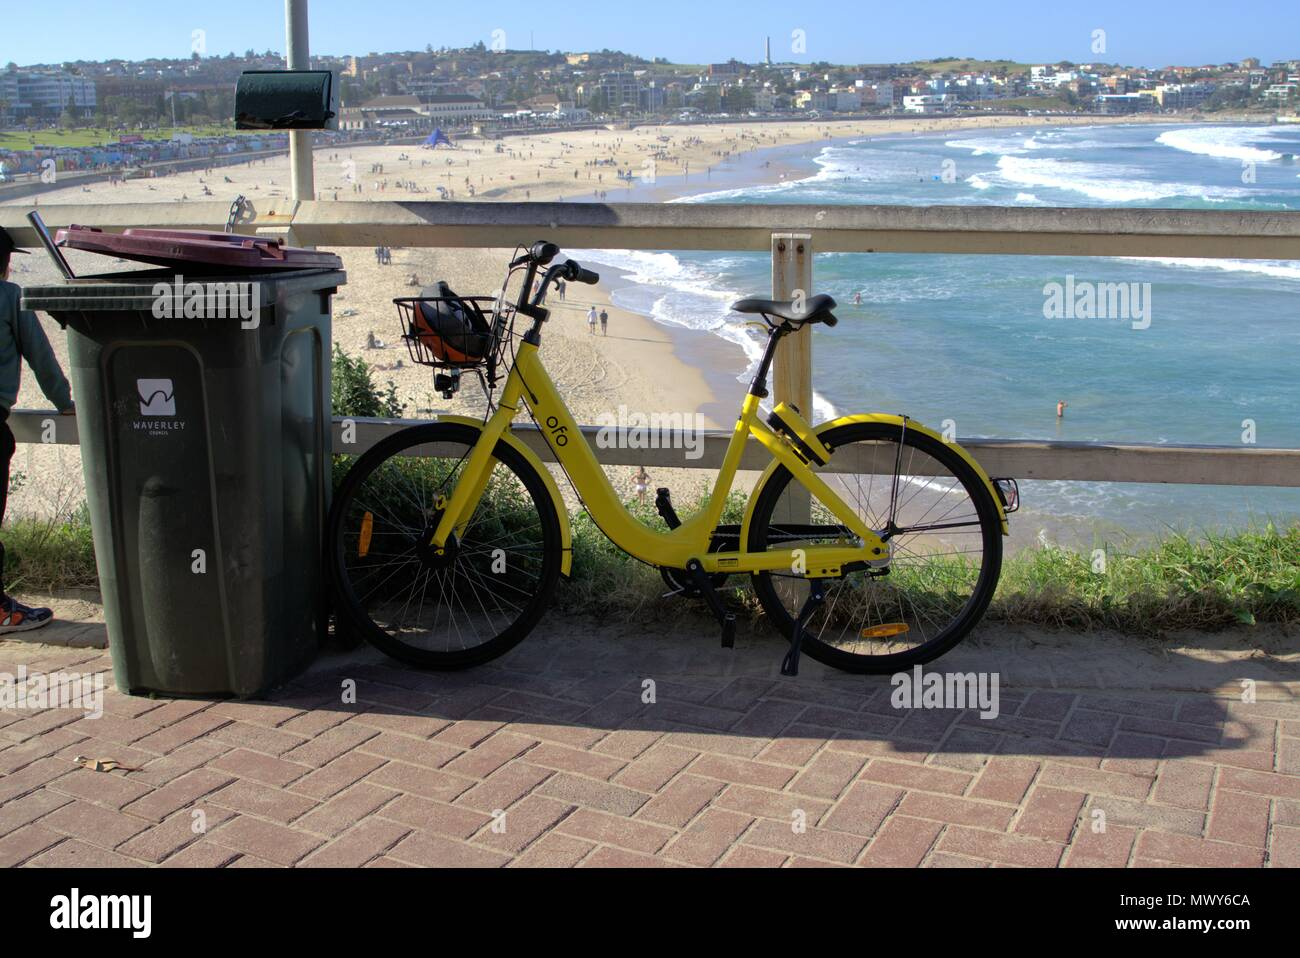 Ofo bike parked at Bondi beach in Sydney Australia. Ride sharing rental bicycle parked against garbage bin in Sydney. Illustrative editorial only. - Stock Image